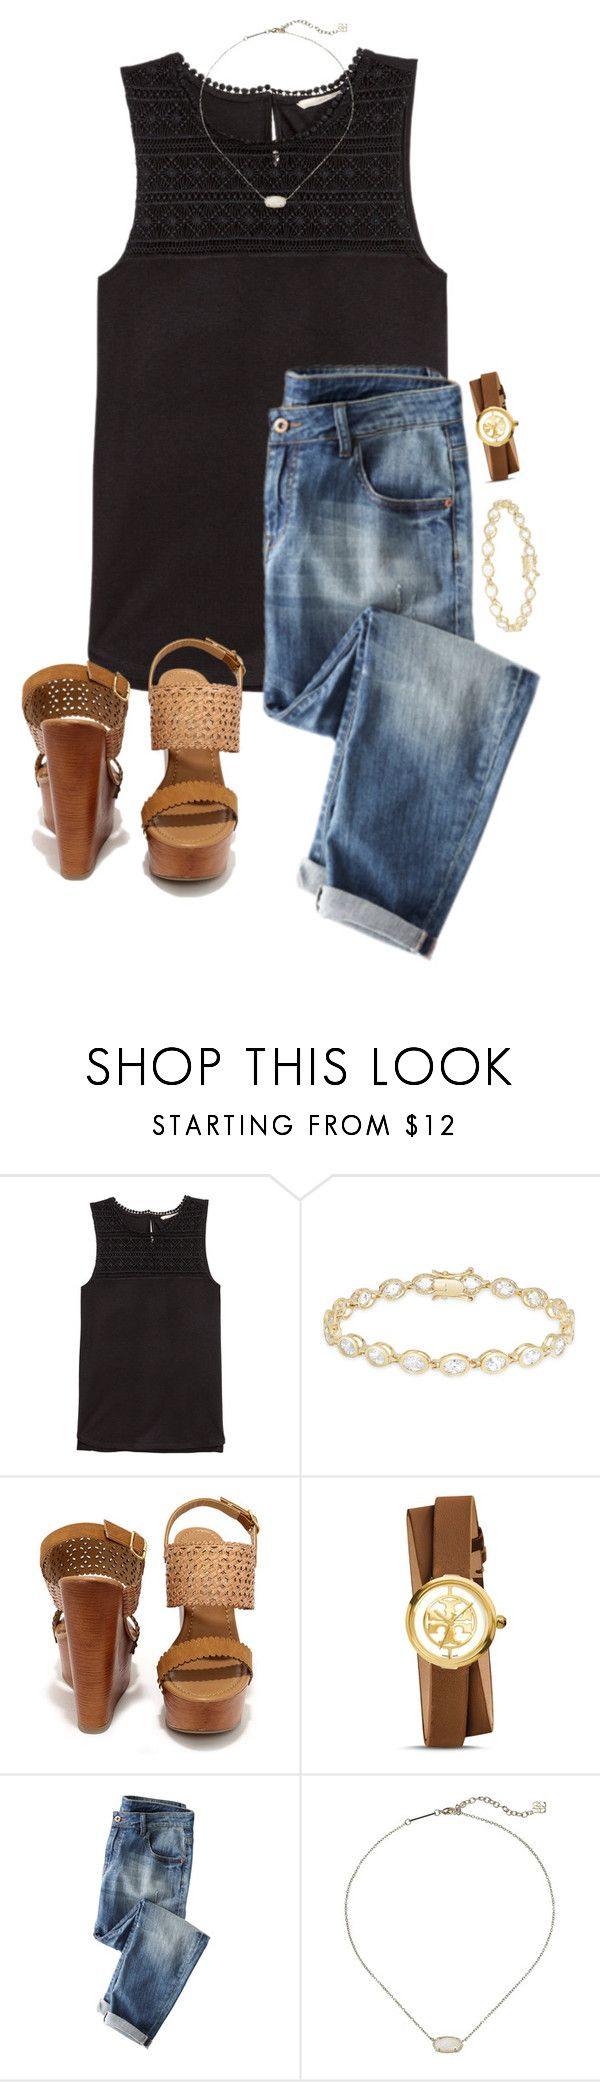 """Untitled #484"" by lydia-hh ❤ liked on Polyvore featuring H&M, Dolce Giavonna, Soda, Tory Burch and Kendra Scott"